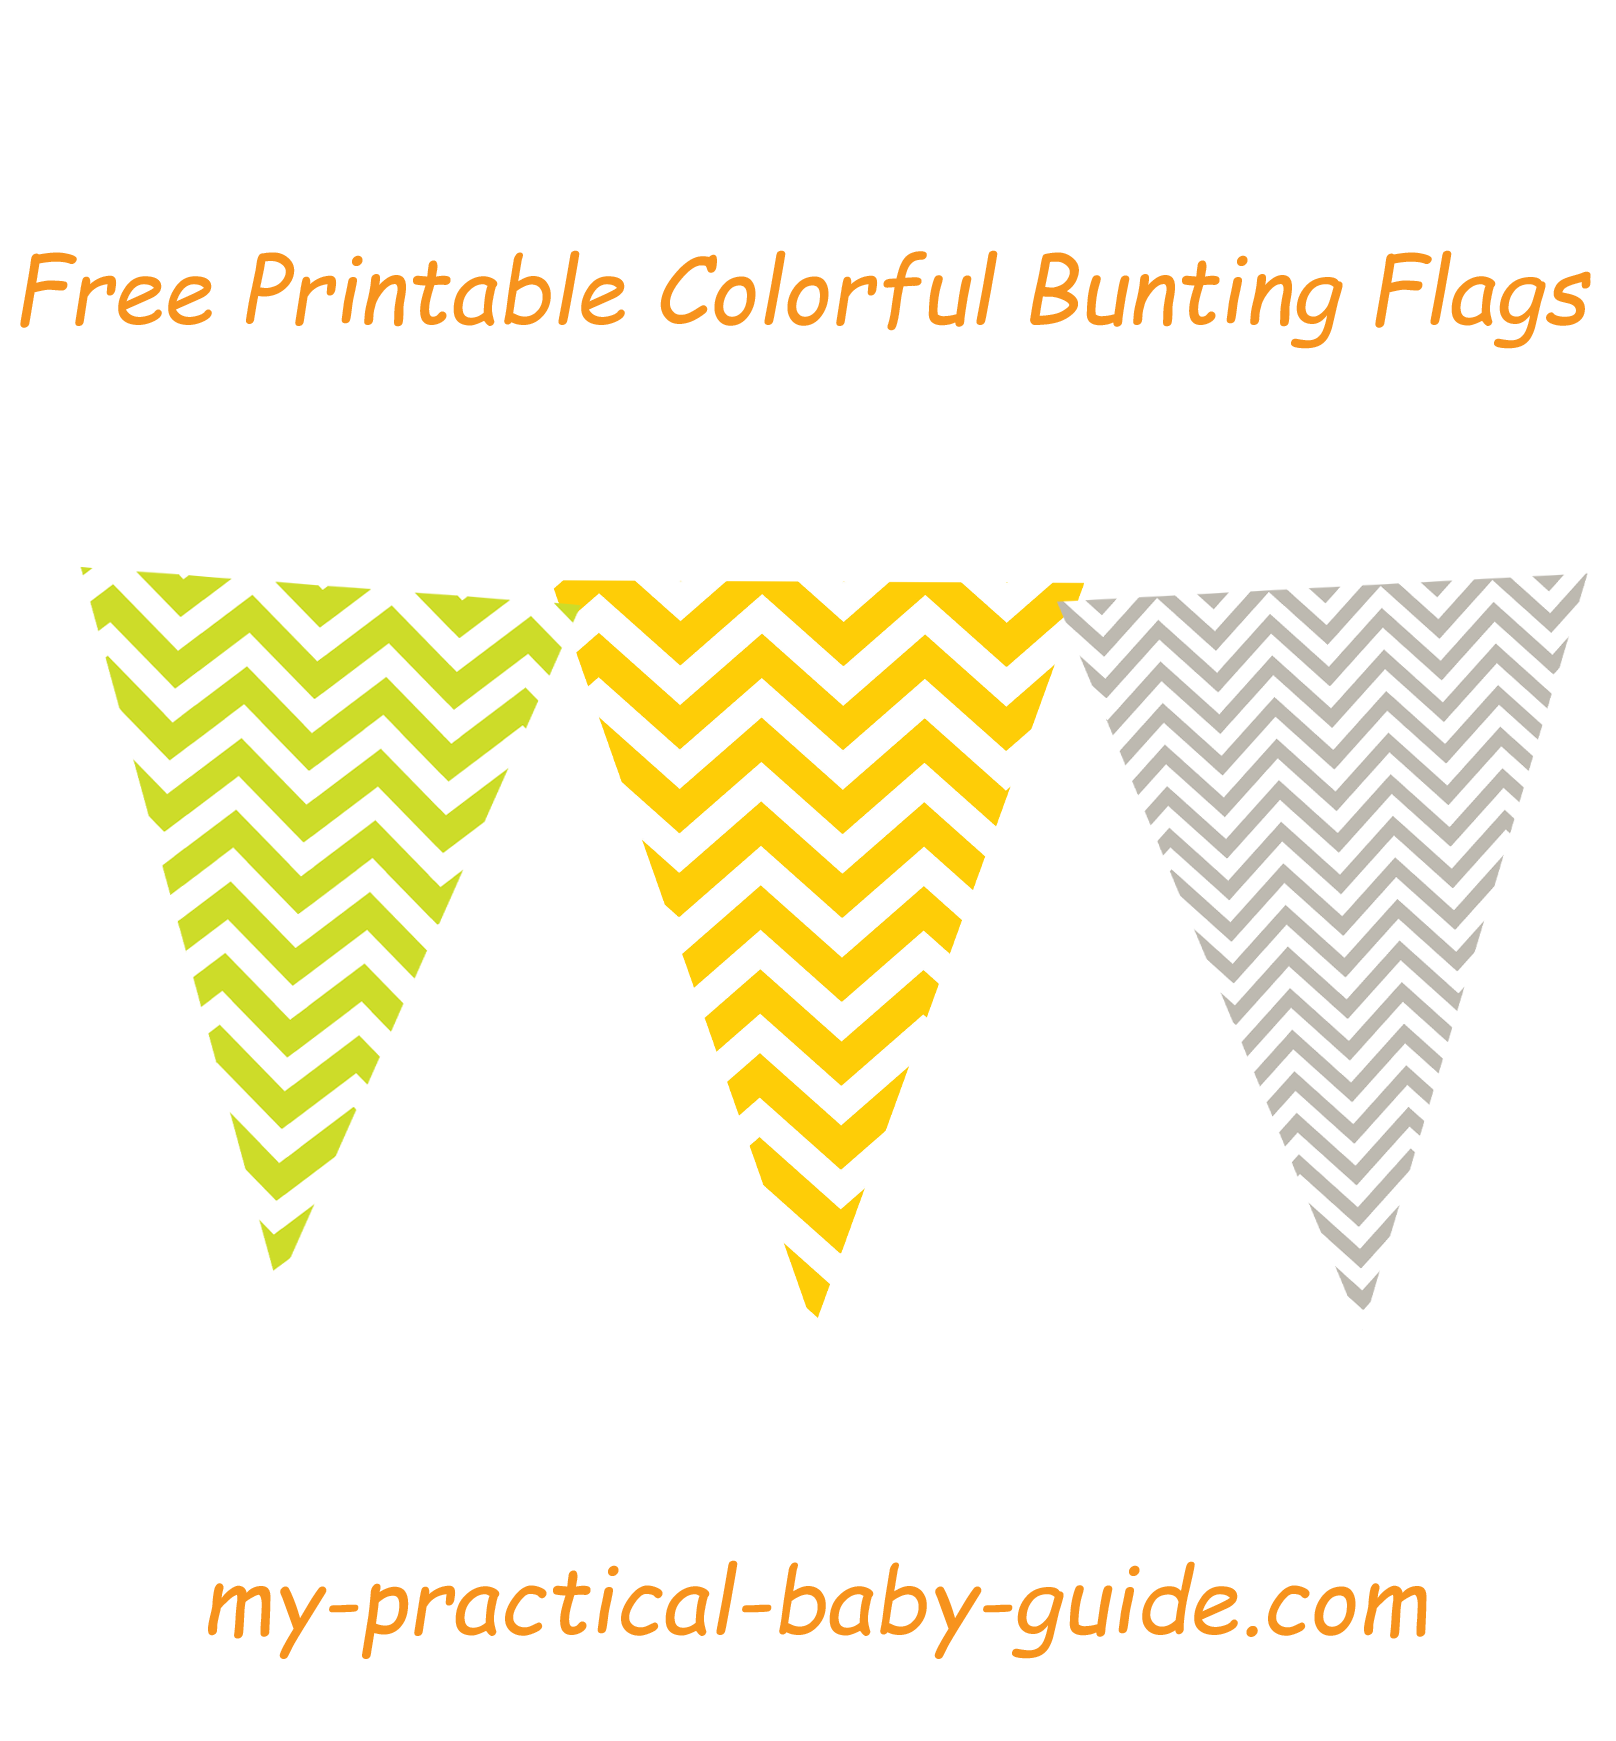 Free Printable Colorful Chevron Bunting Flags Lime Green Orange And Gray Are The Chosen Colors